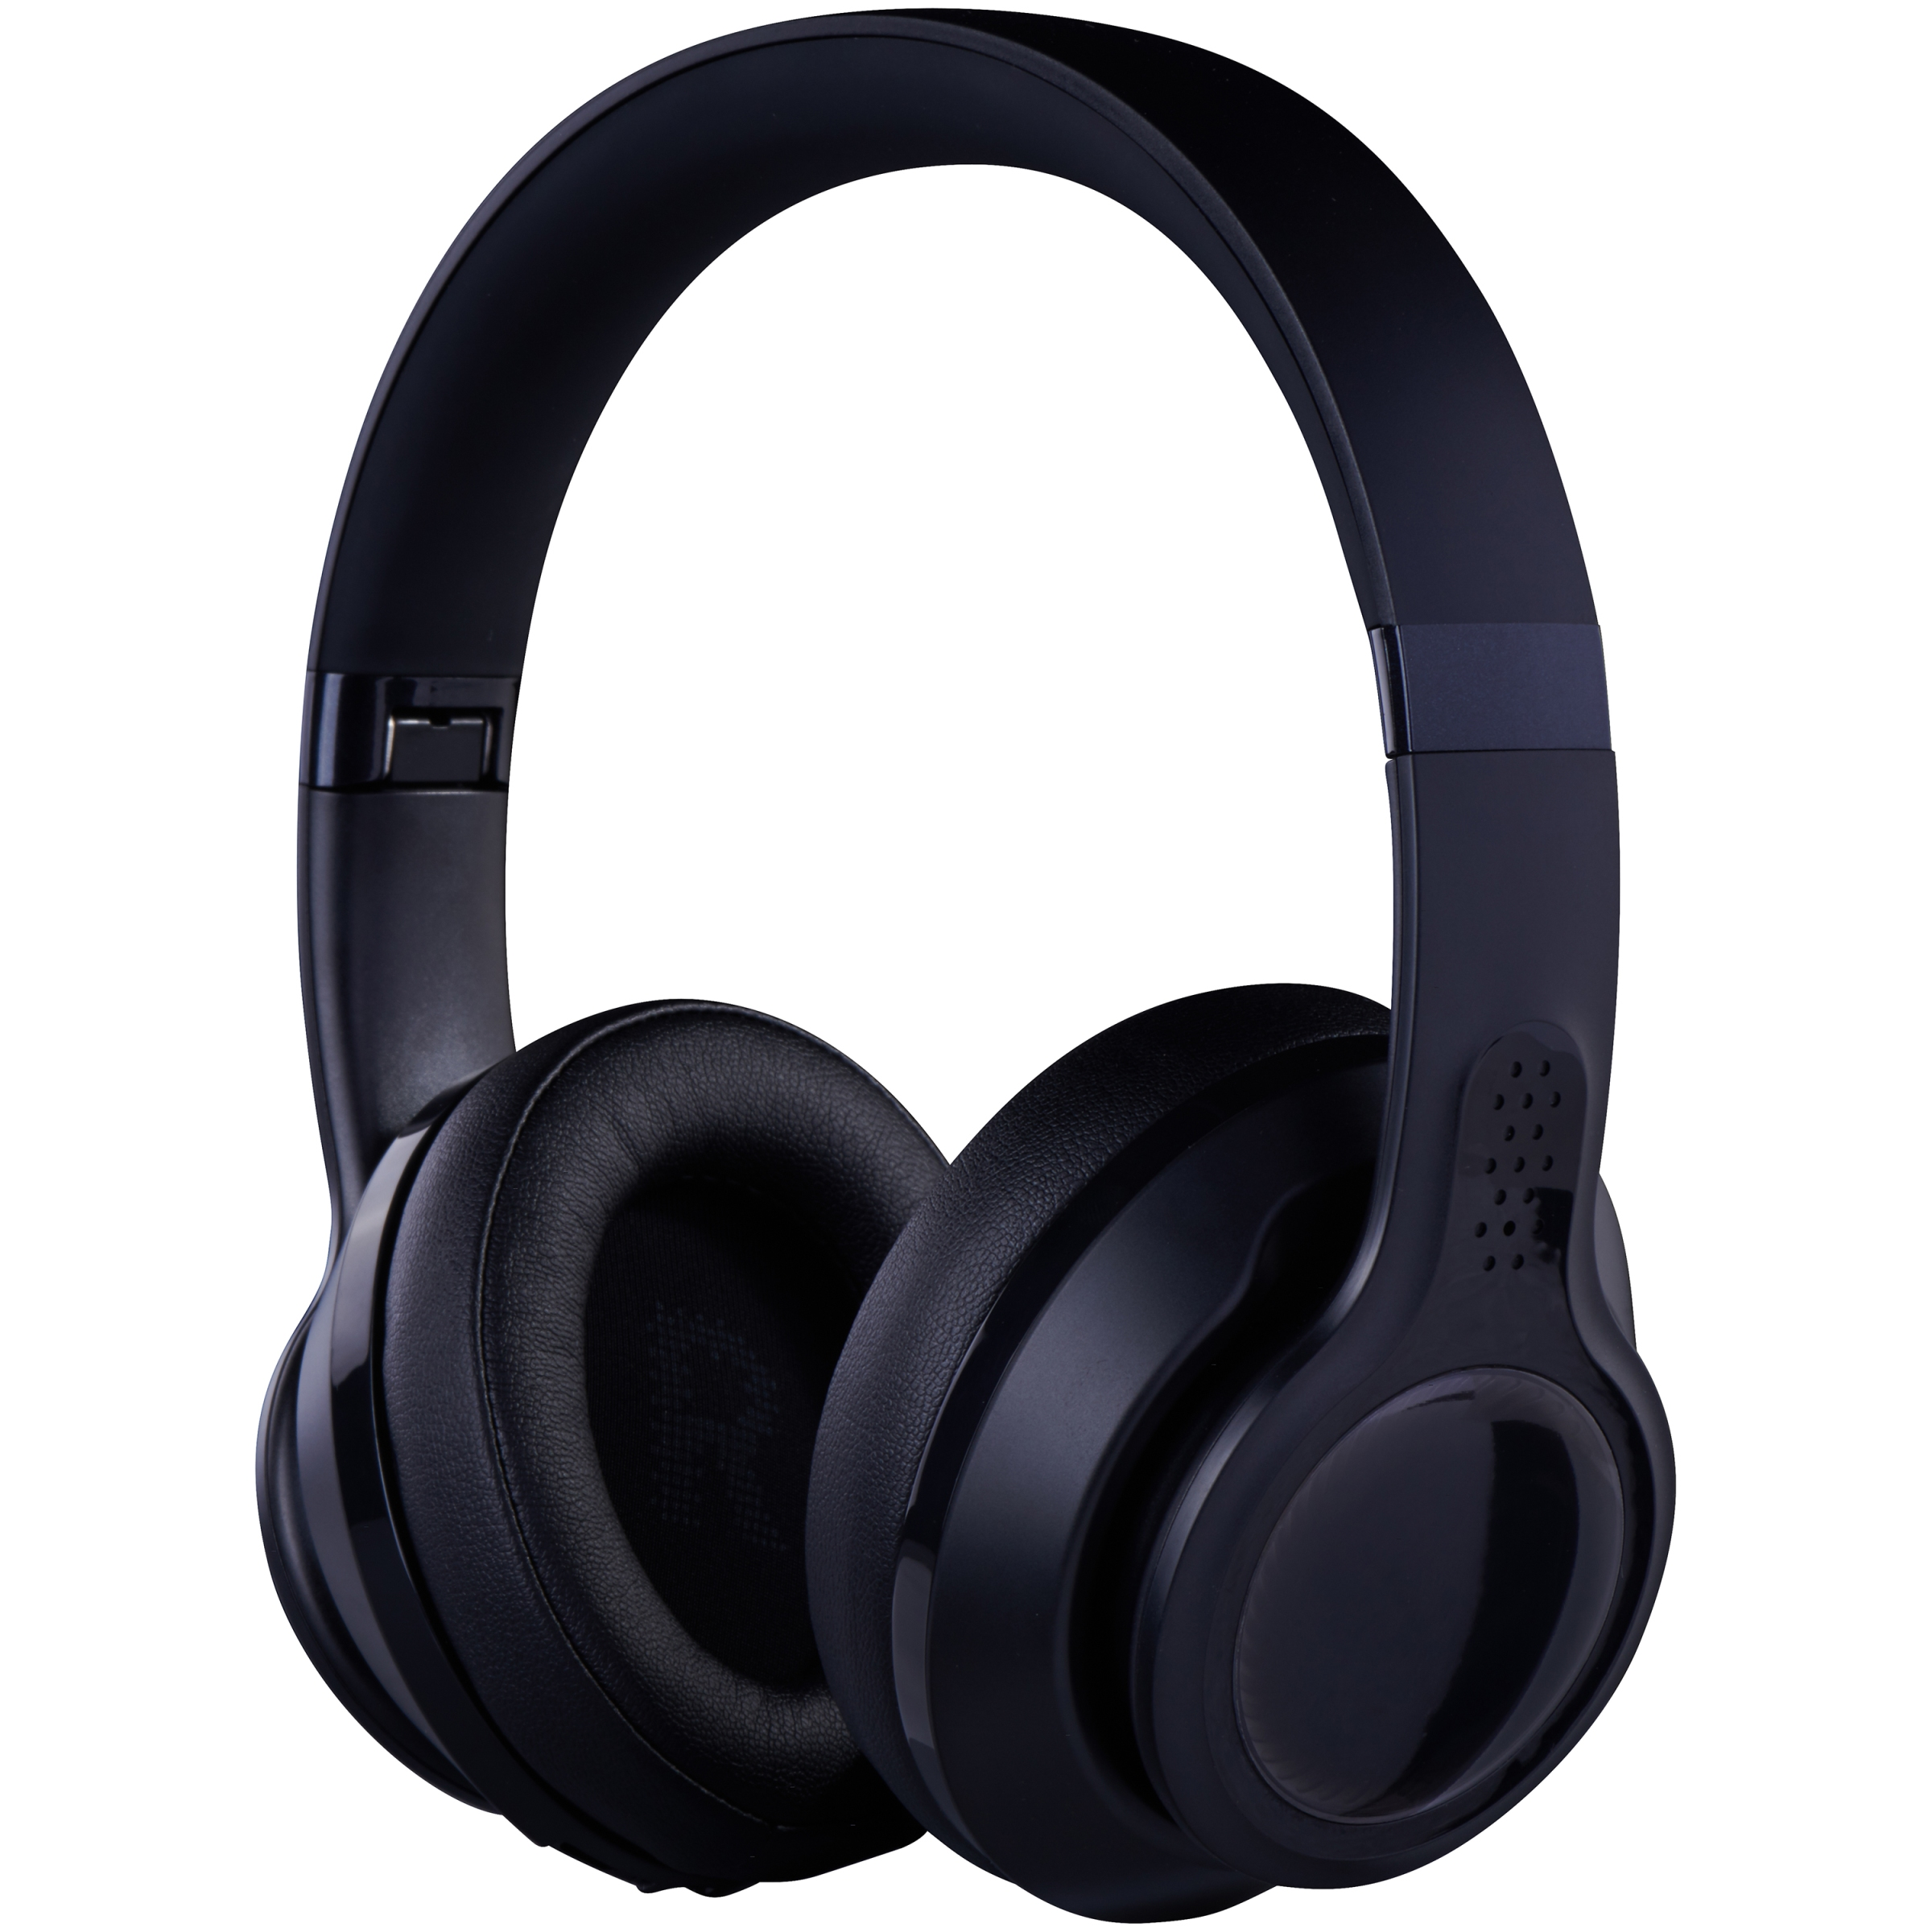 Blackweb Over-Ear Wireless Headphones with Active Noise Cancelation